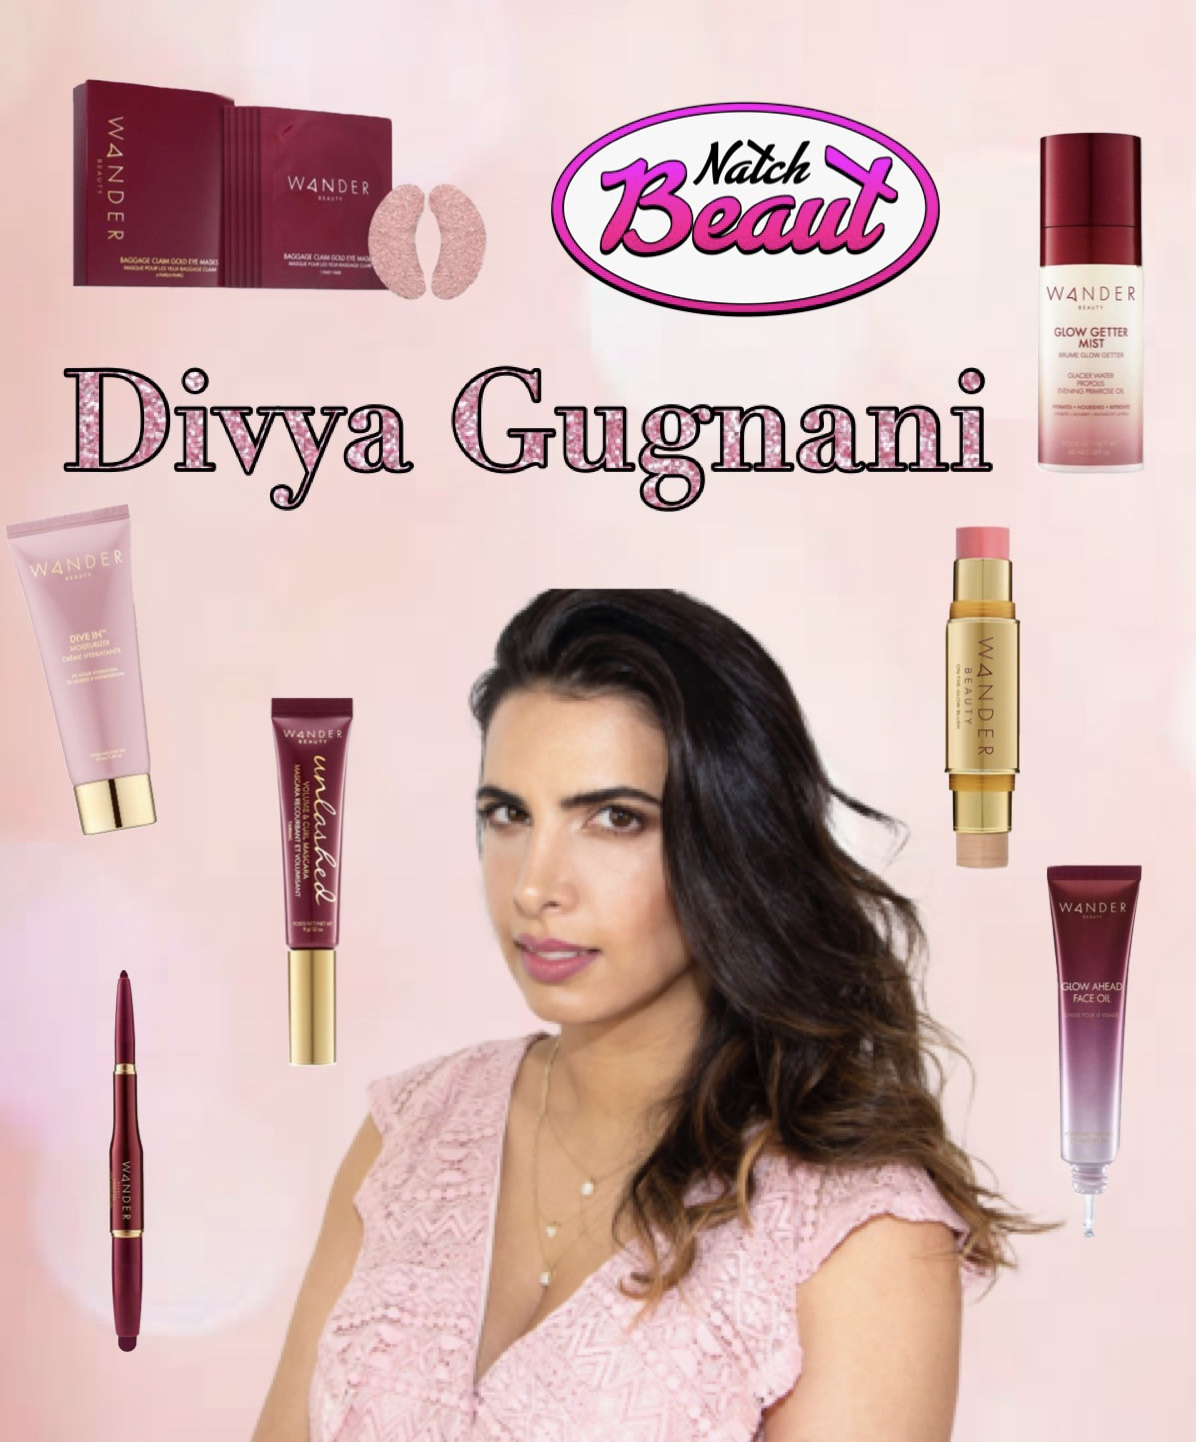 Divya Gugnani, founder of Wander Beauty, surrounded by some Wander Beauty products.